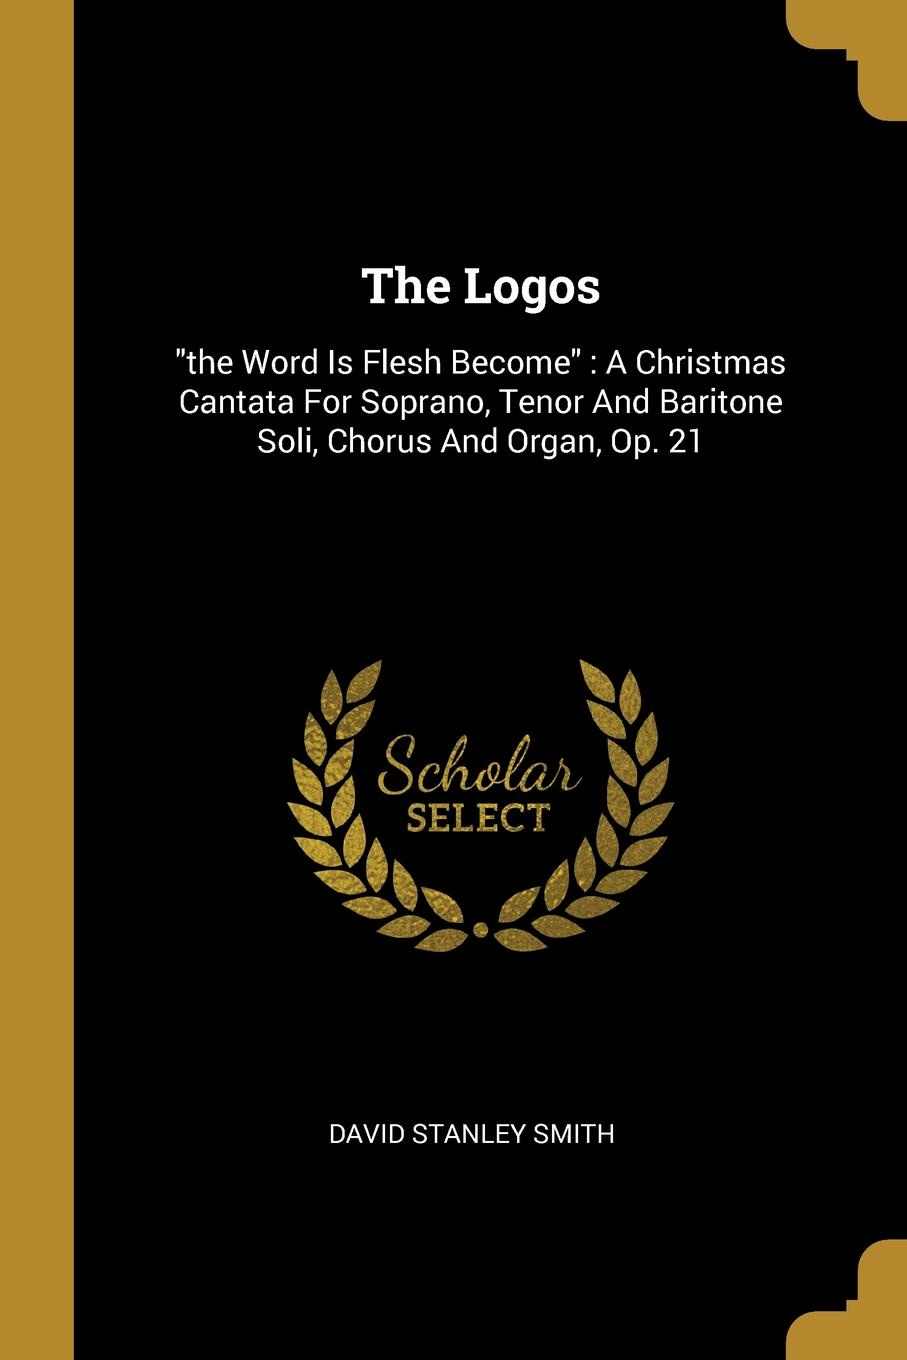 """David Stanley Smith. The Logos. """"the Word Is Flesh Become"""" : A Christmas Cantata For Soprano, Tenor And Baritone Soli, Chorus And Organ, Op. 21"""